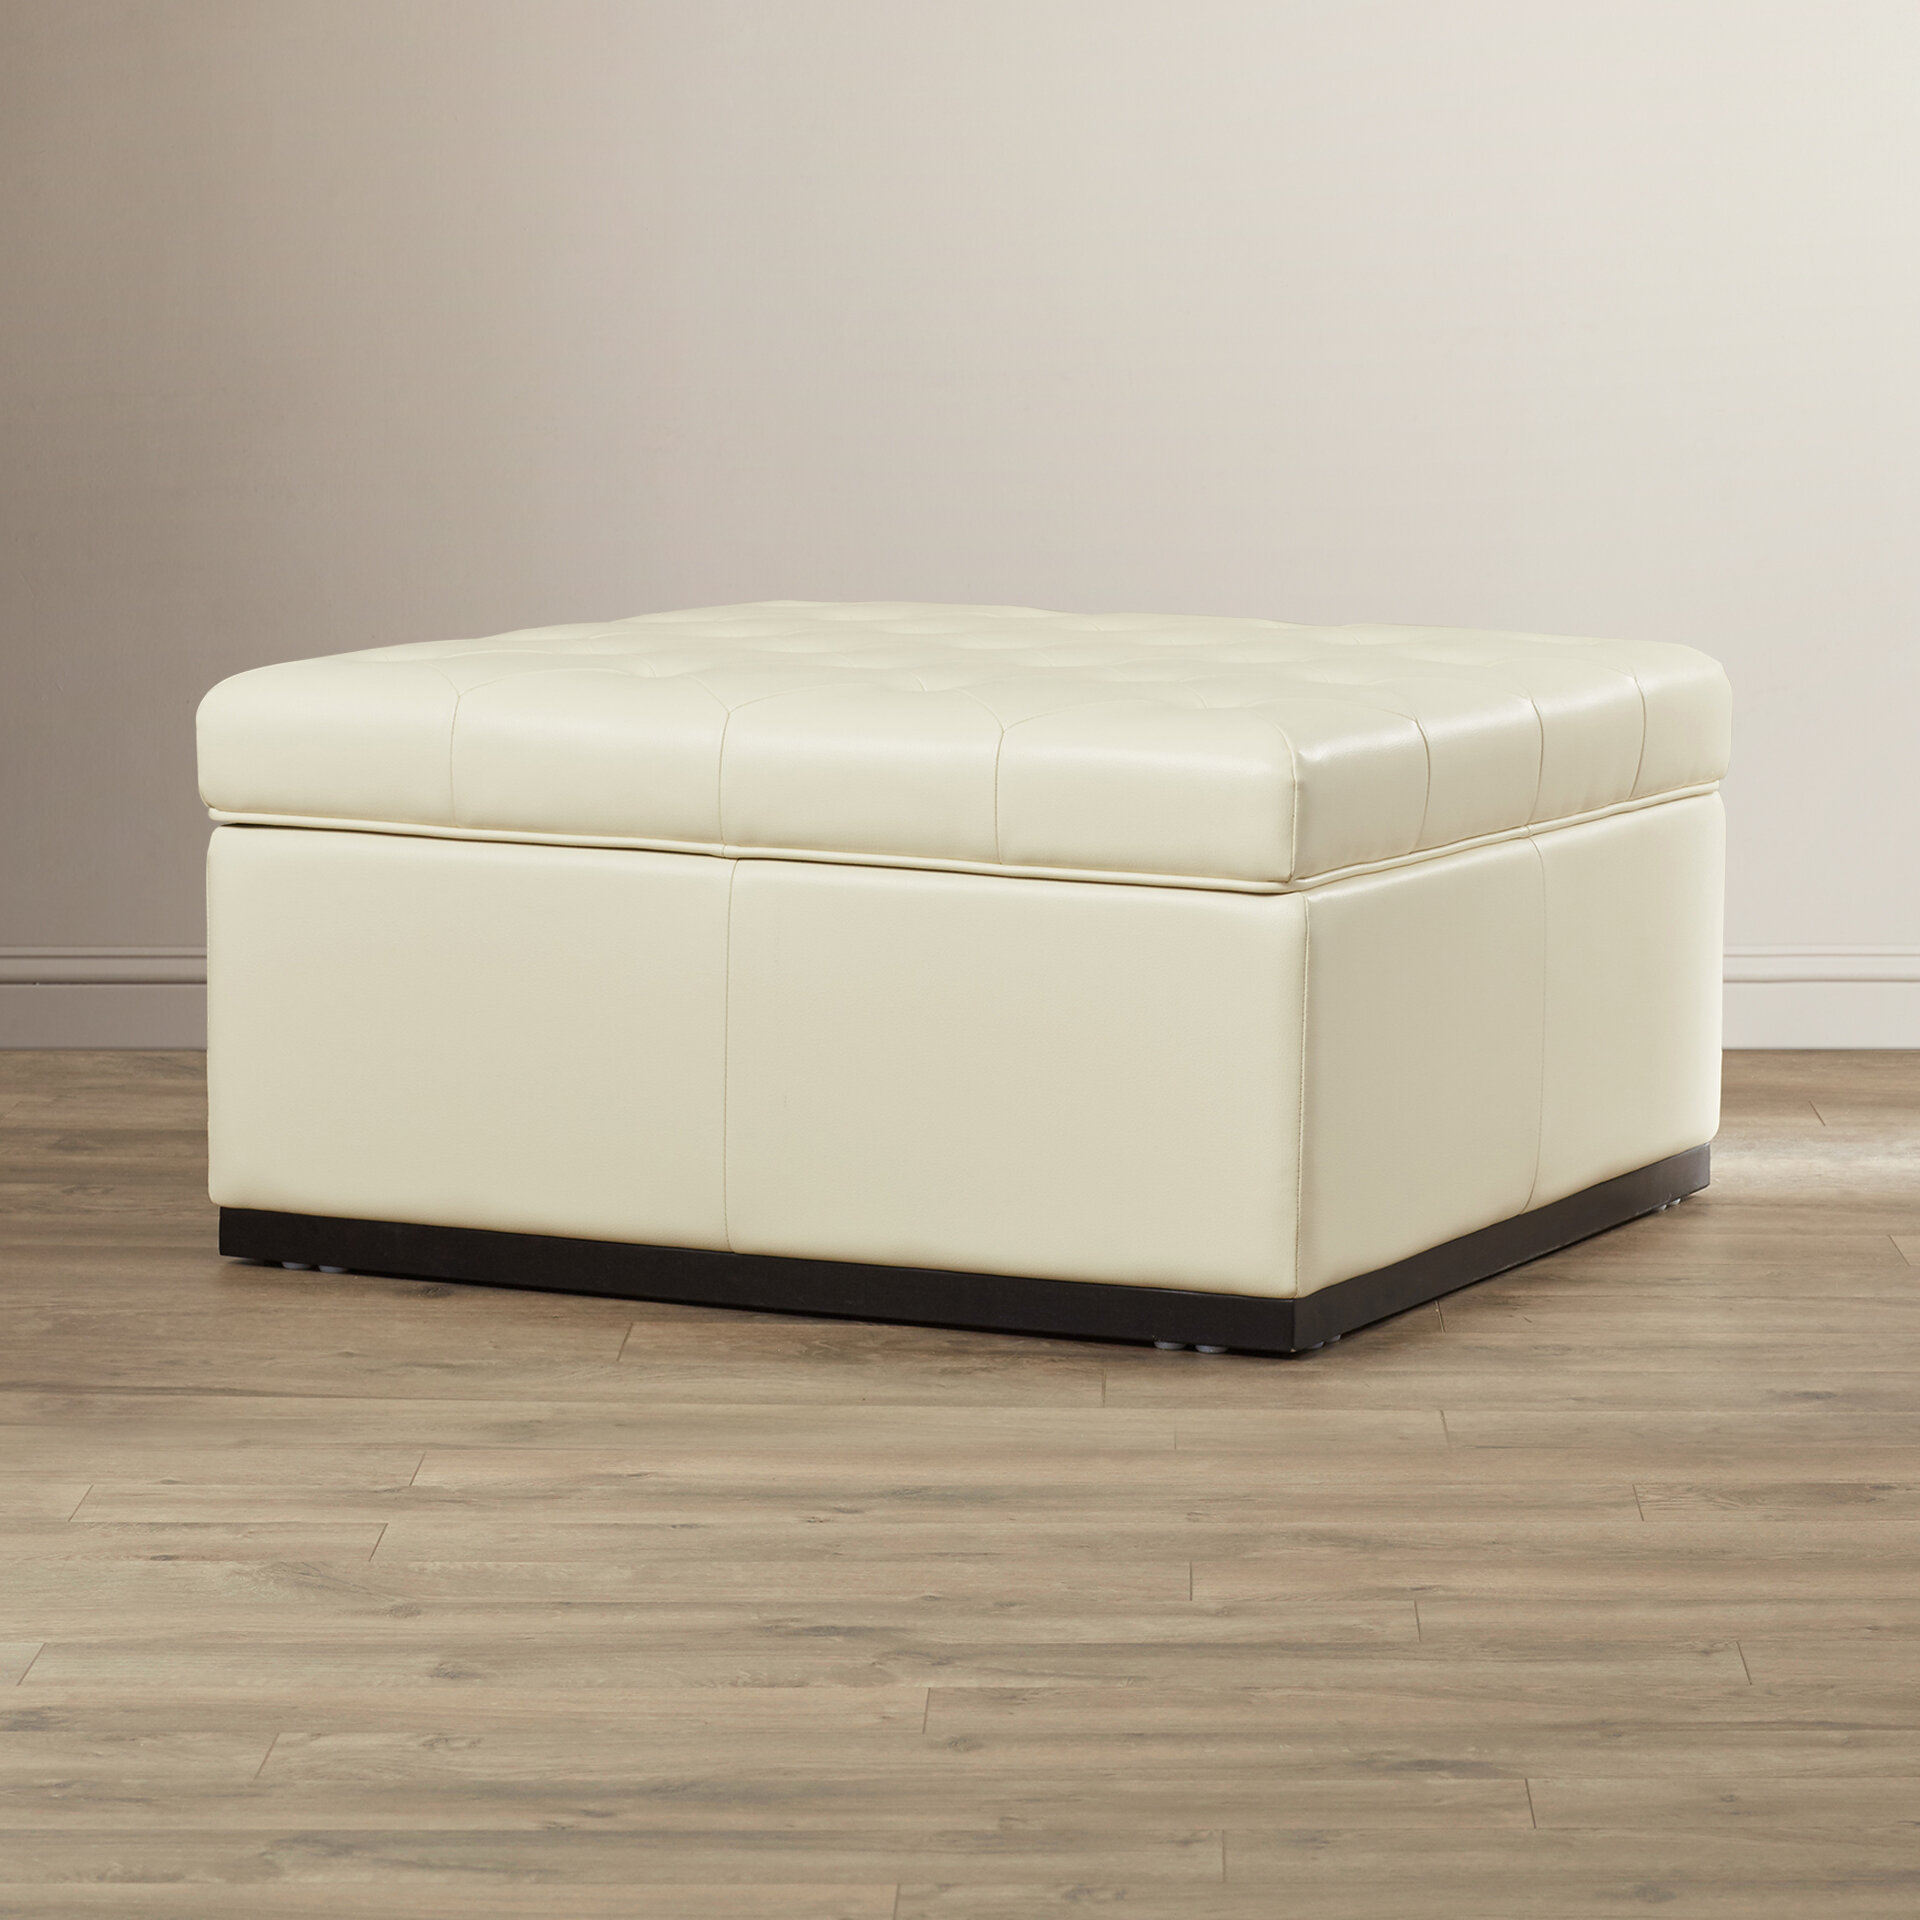 storage marvelous ideas chairs gorgeous interesting picture leather including living tufted large st decoration black cream square ottoman for as using with of decor room design upholstered furniture lounge rectangular